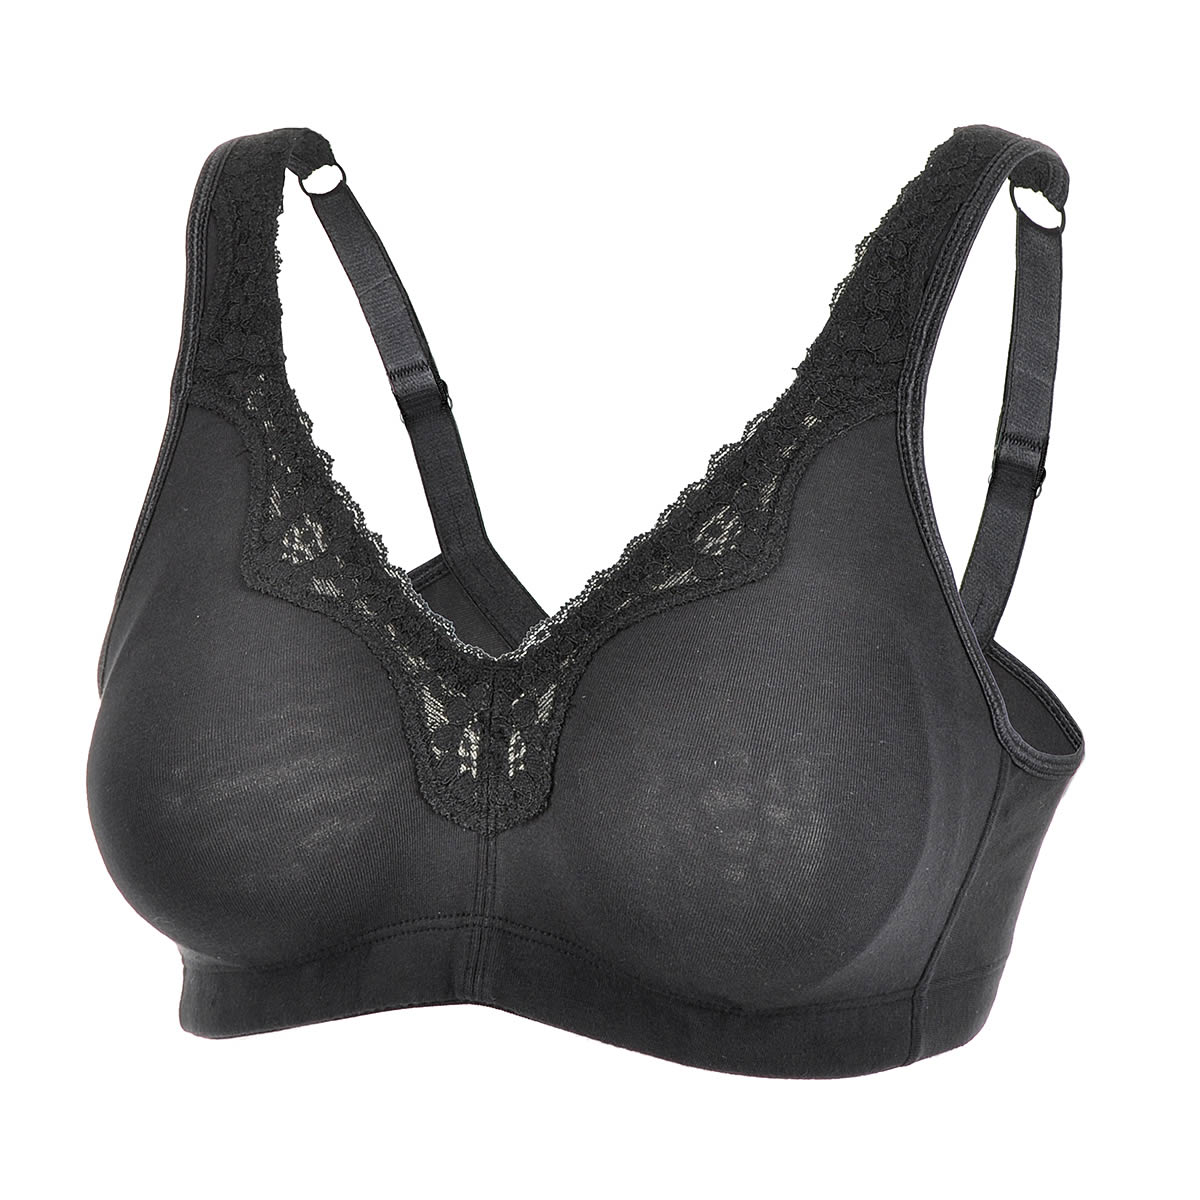 Quality-Lace-Trim-Full-Figured-Soft-Cotton-Wirefree-Plus-Size-Bra-Solid-Color